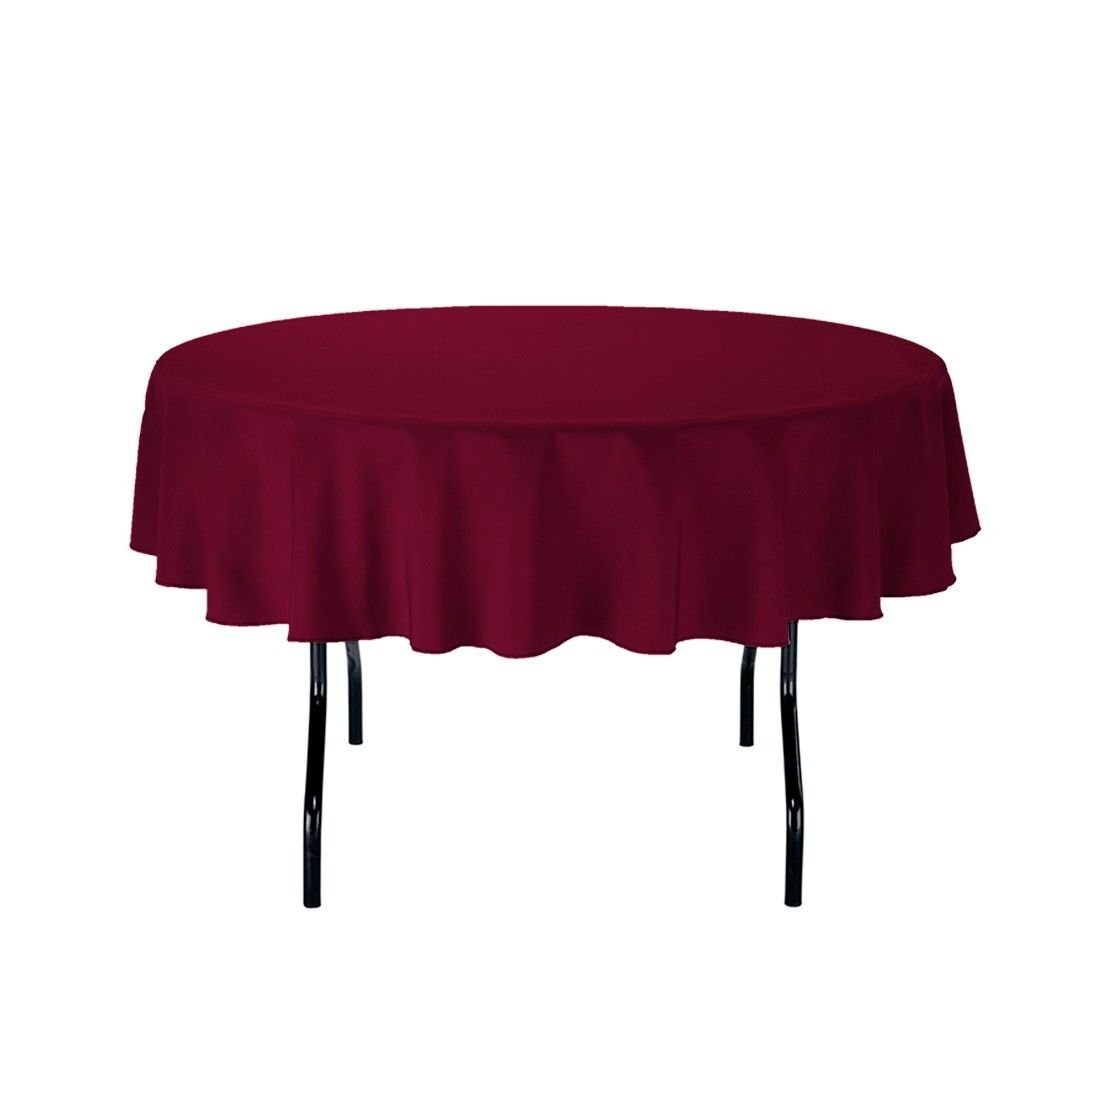 """Gee Di Moda Tablecloth - 70"""" Inch Round Tablecloths for Circular Table Cover in Burgundy Washable Polyester - Great for Buffet Table, Parties, Holiday Dinner & More"""